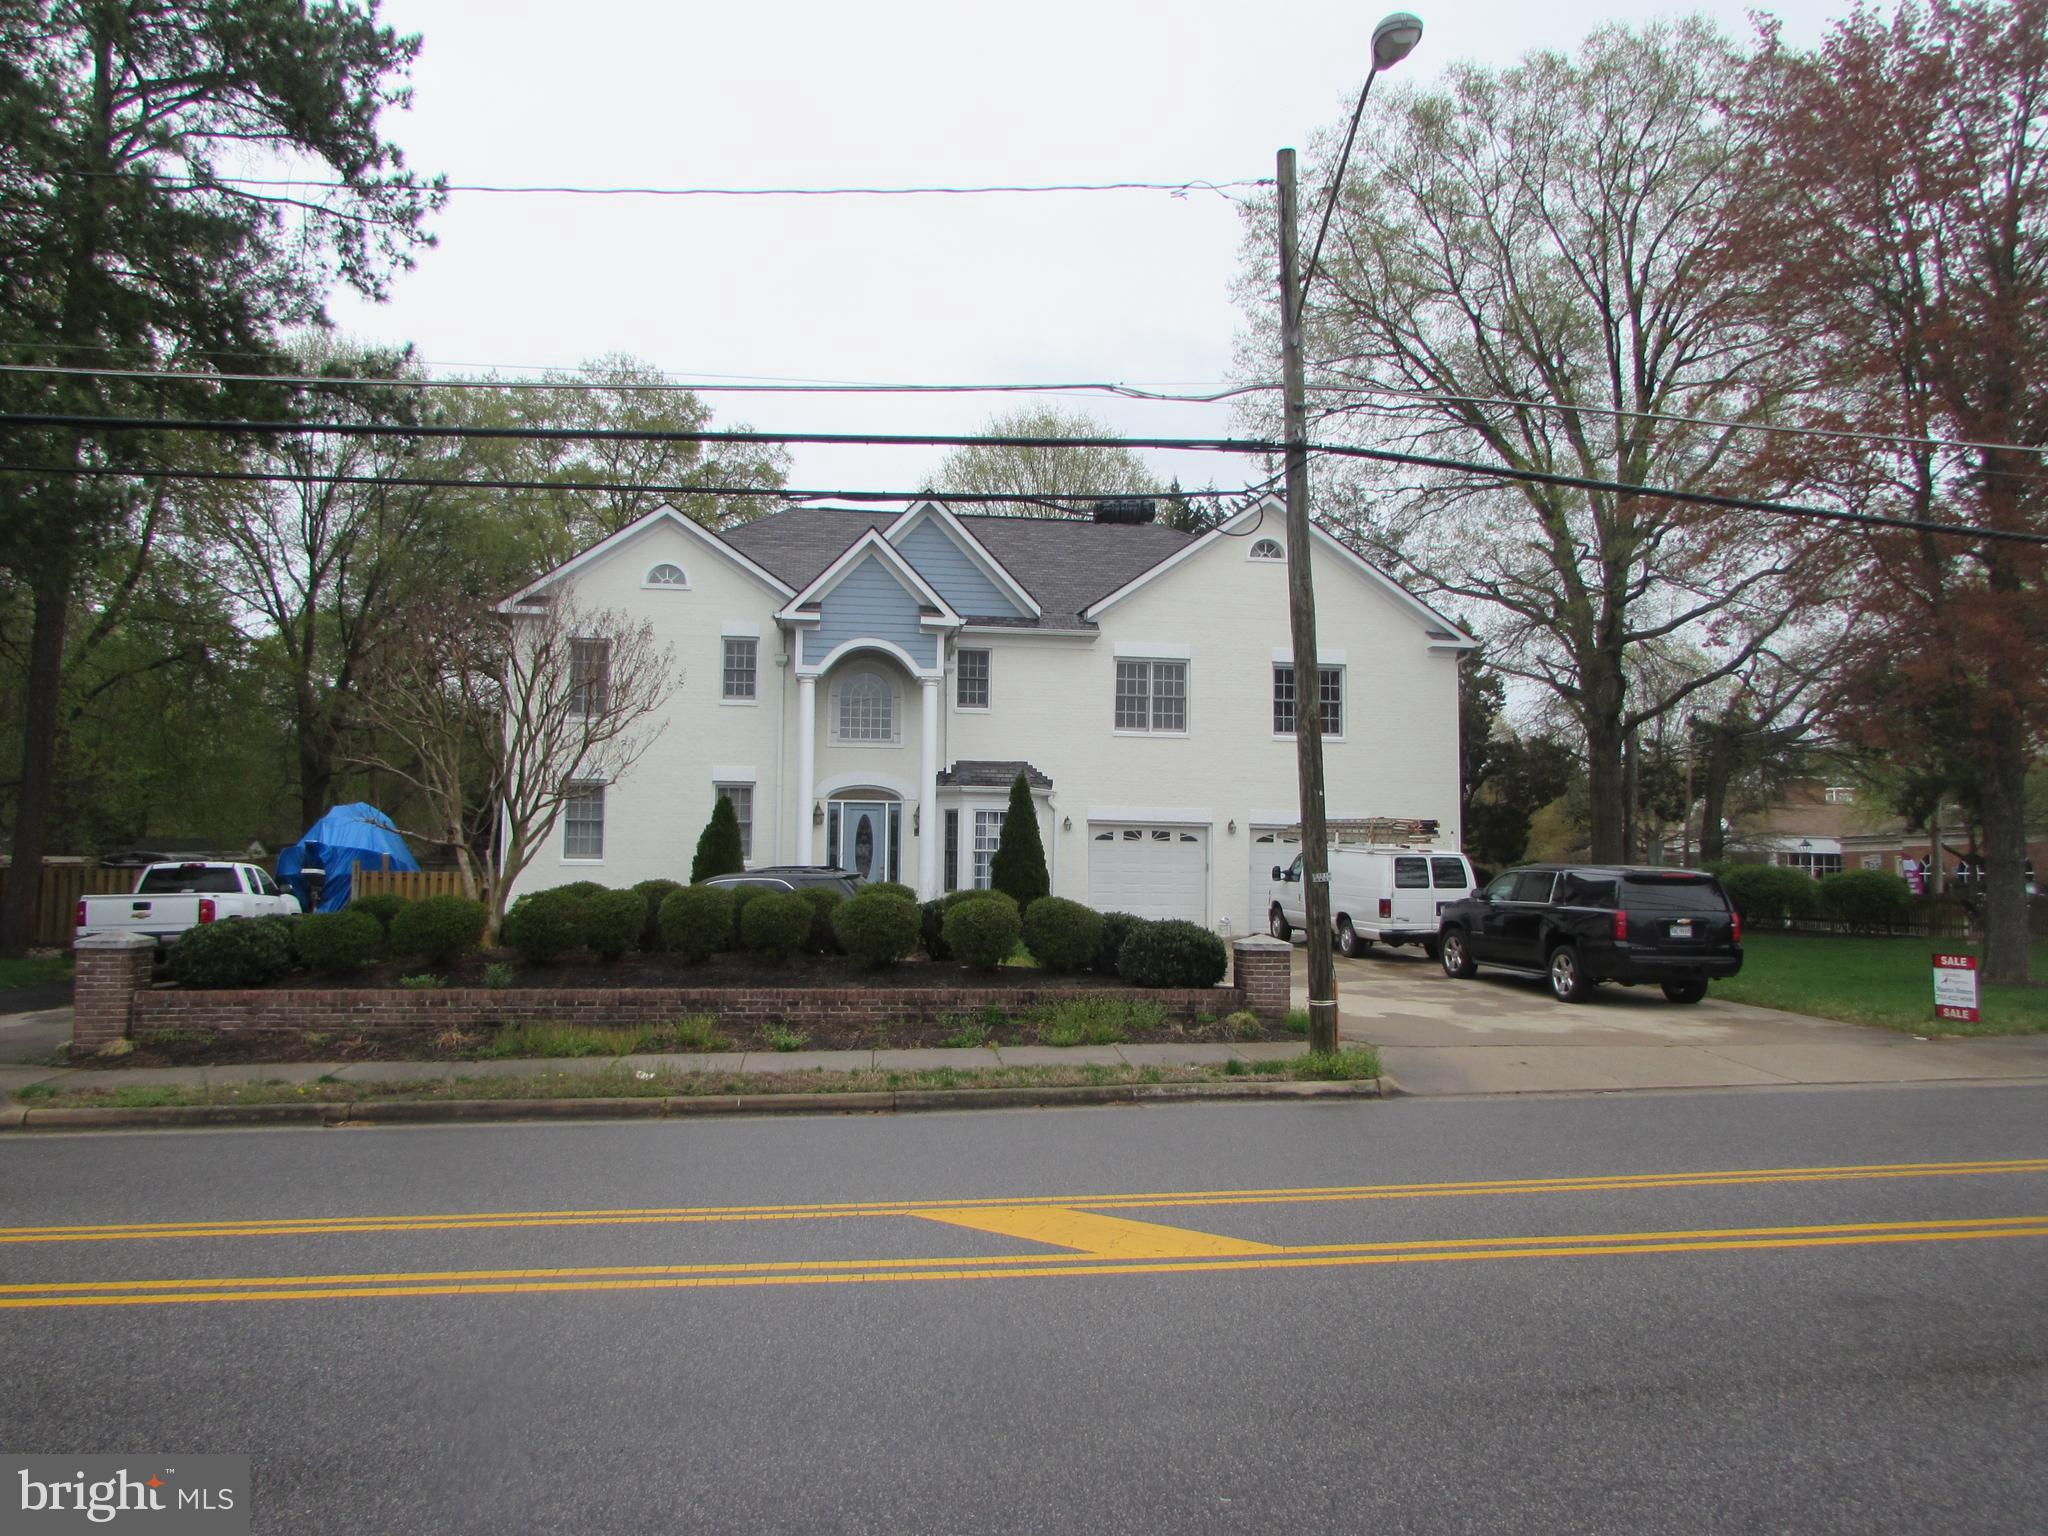 3 level single family features 6 bedrooms, 5 full bathroooms, dining area, family room, kitchen with breakfast area, fully finished basement, 2 car garage with circular driveway.  It is conveniently located, near Hospital, Schools, Shopping Centers, and more.